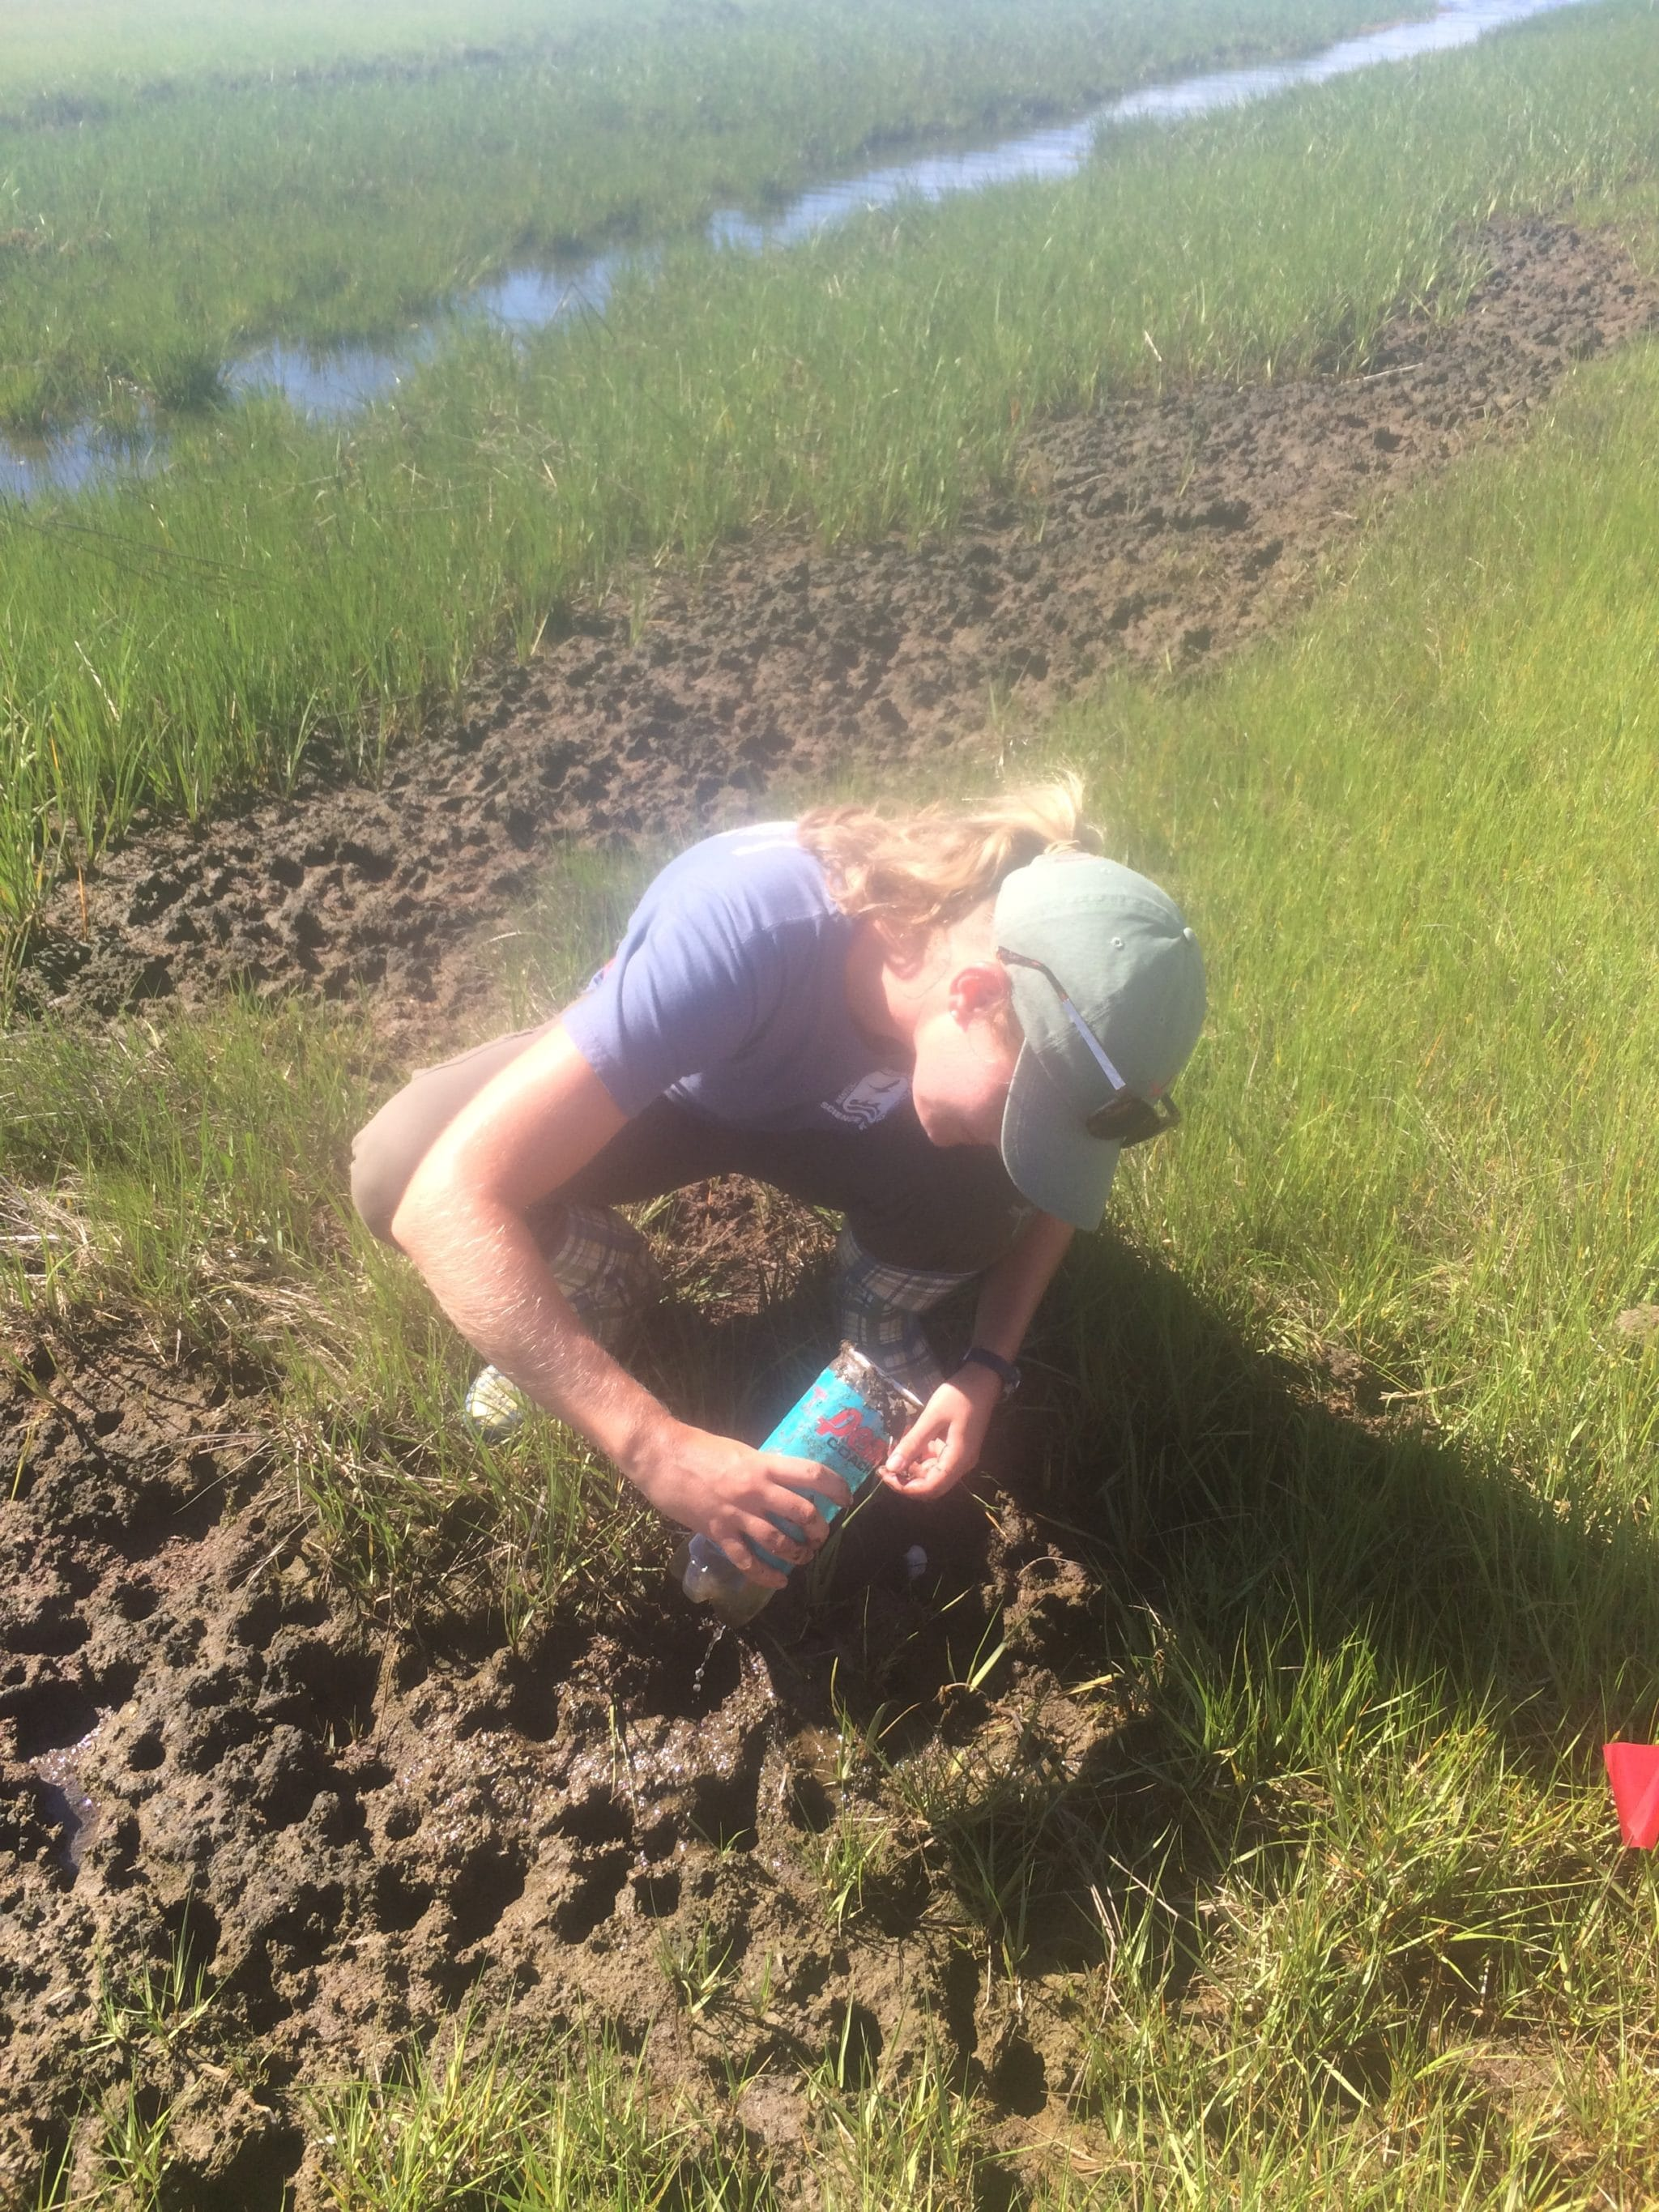 Carefully checking cans for trapped crabs (watch your fingers!)